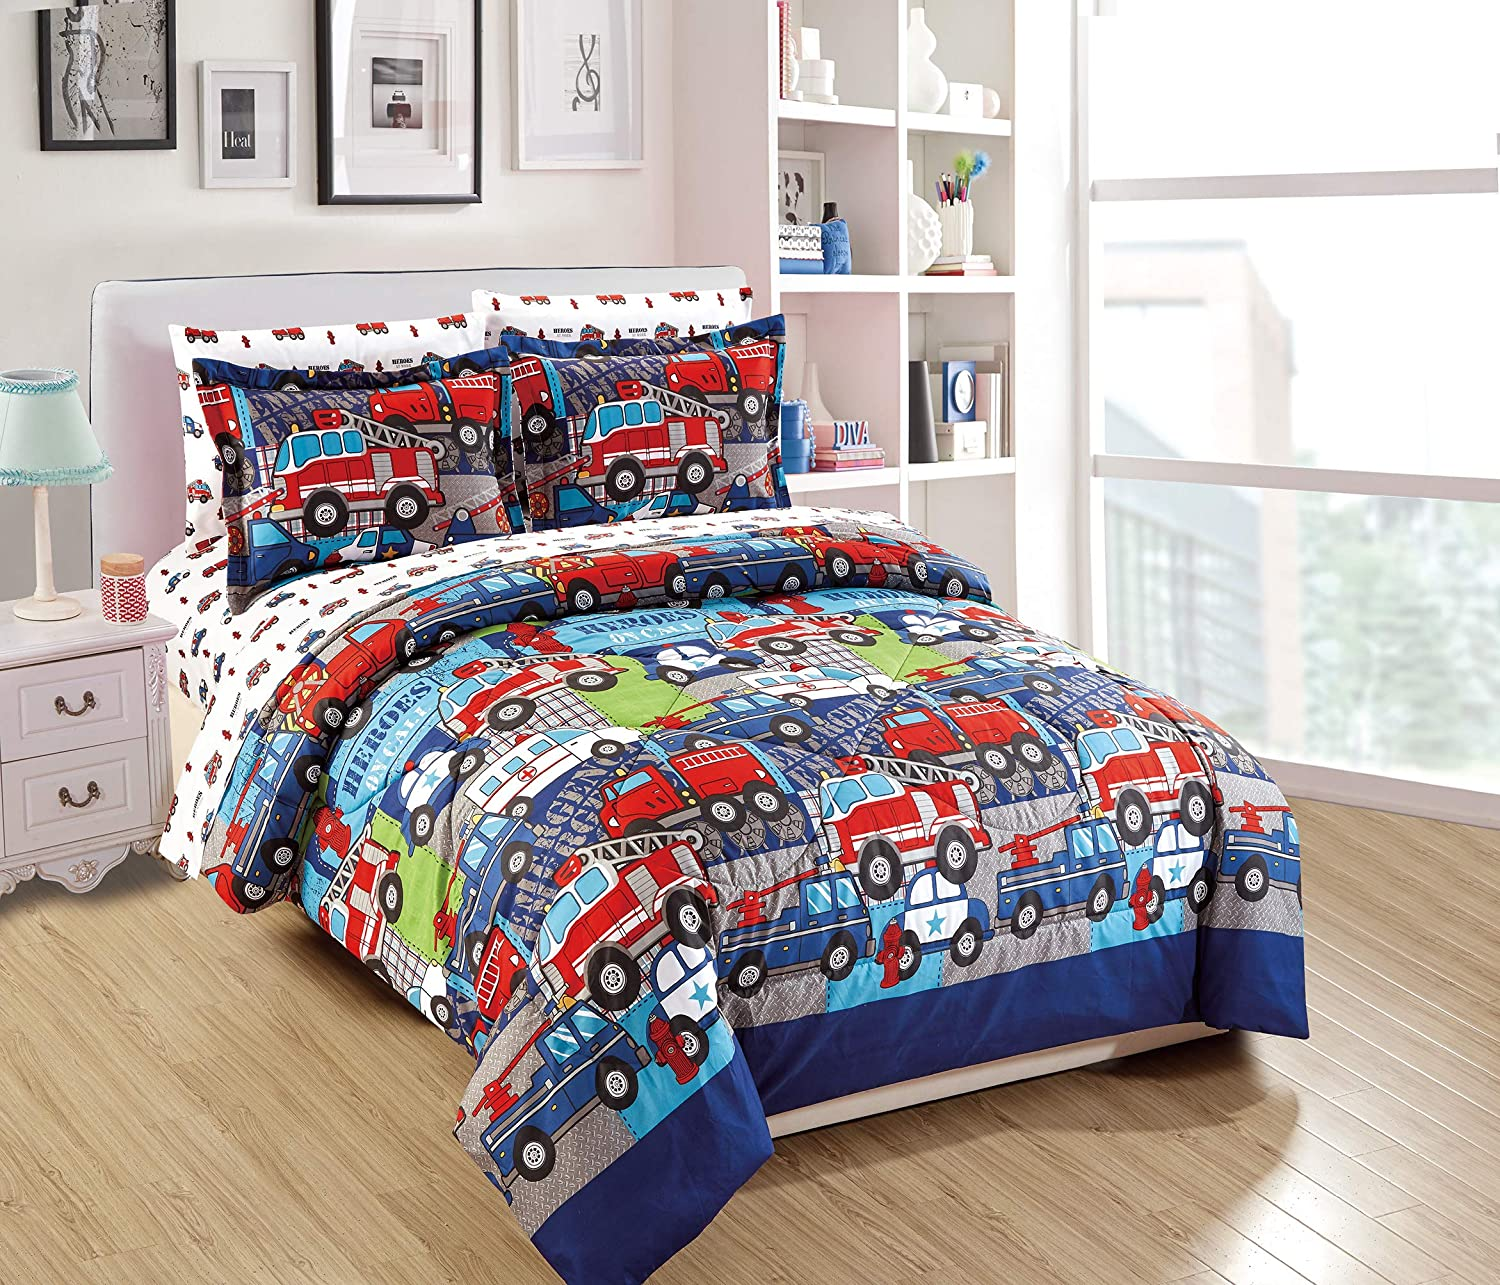 Mk Home 5pc Twin Size Comforter Set for Boys Heroes on Call Firetruck Police Car Ambulance Red Blue White New